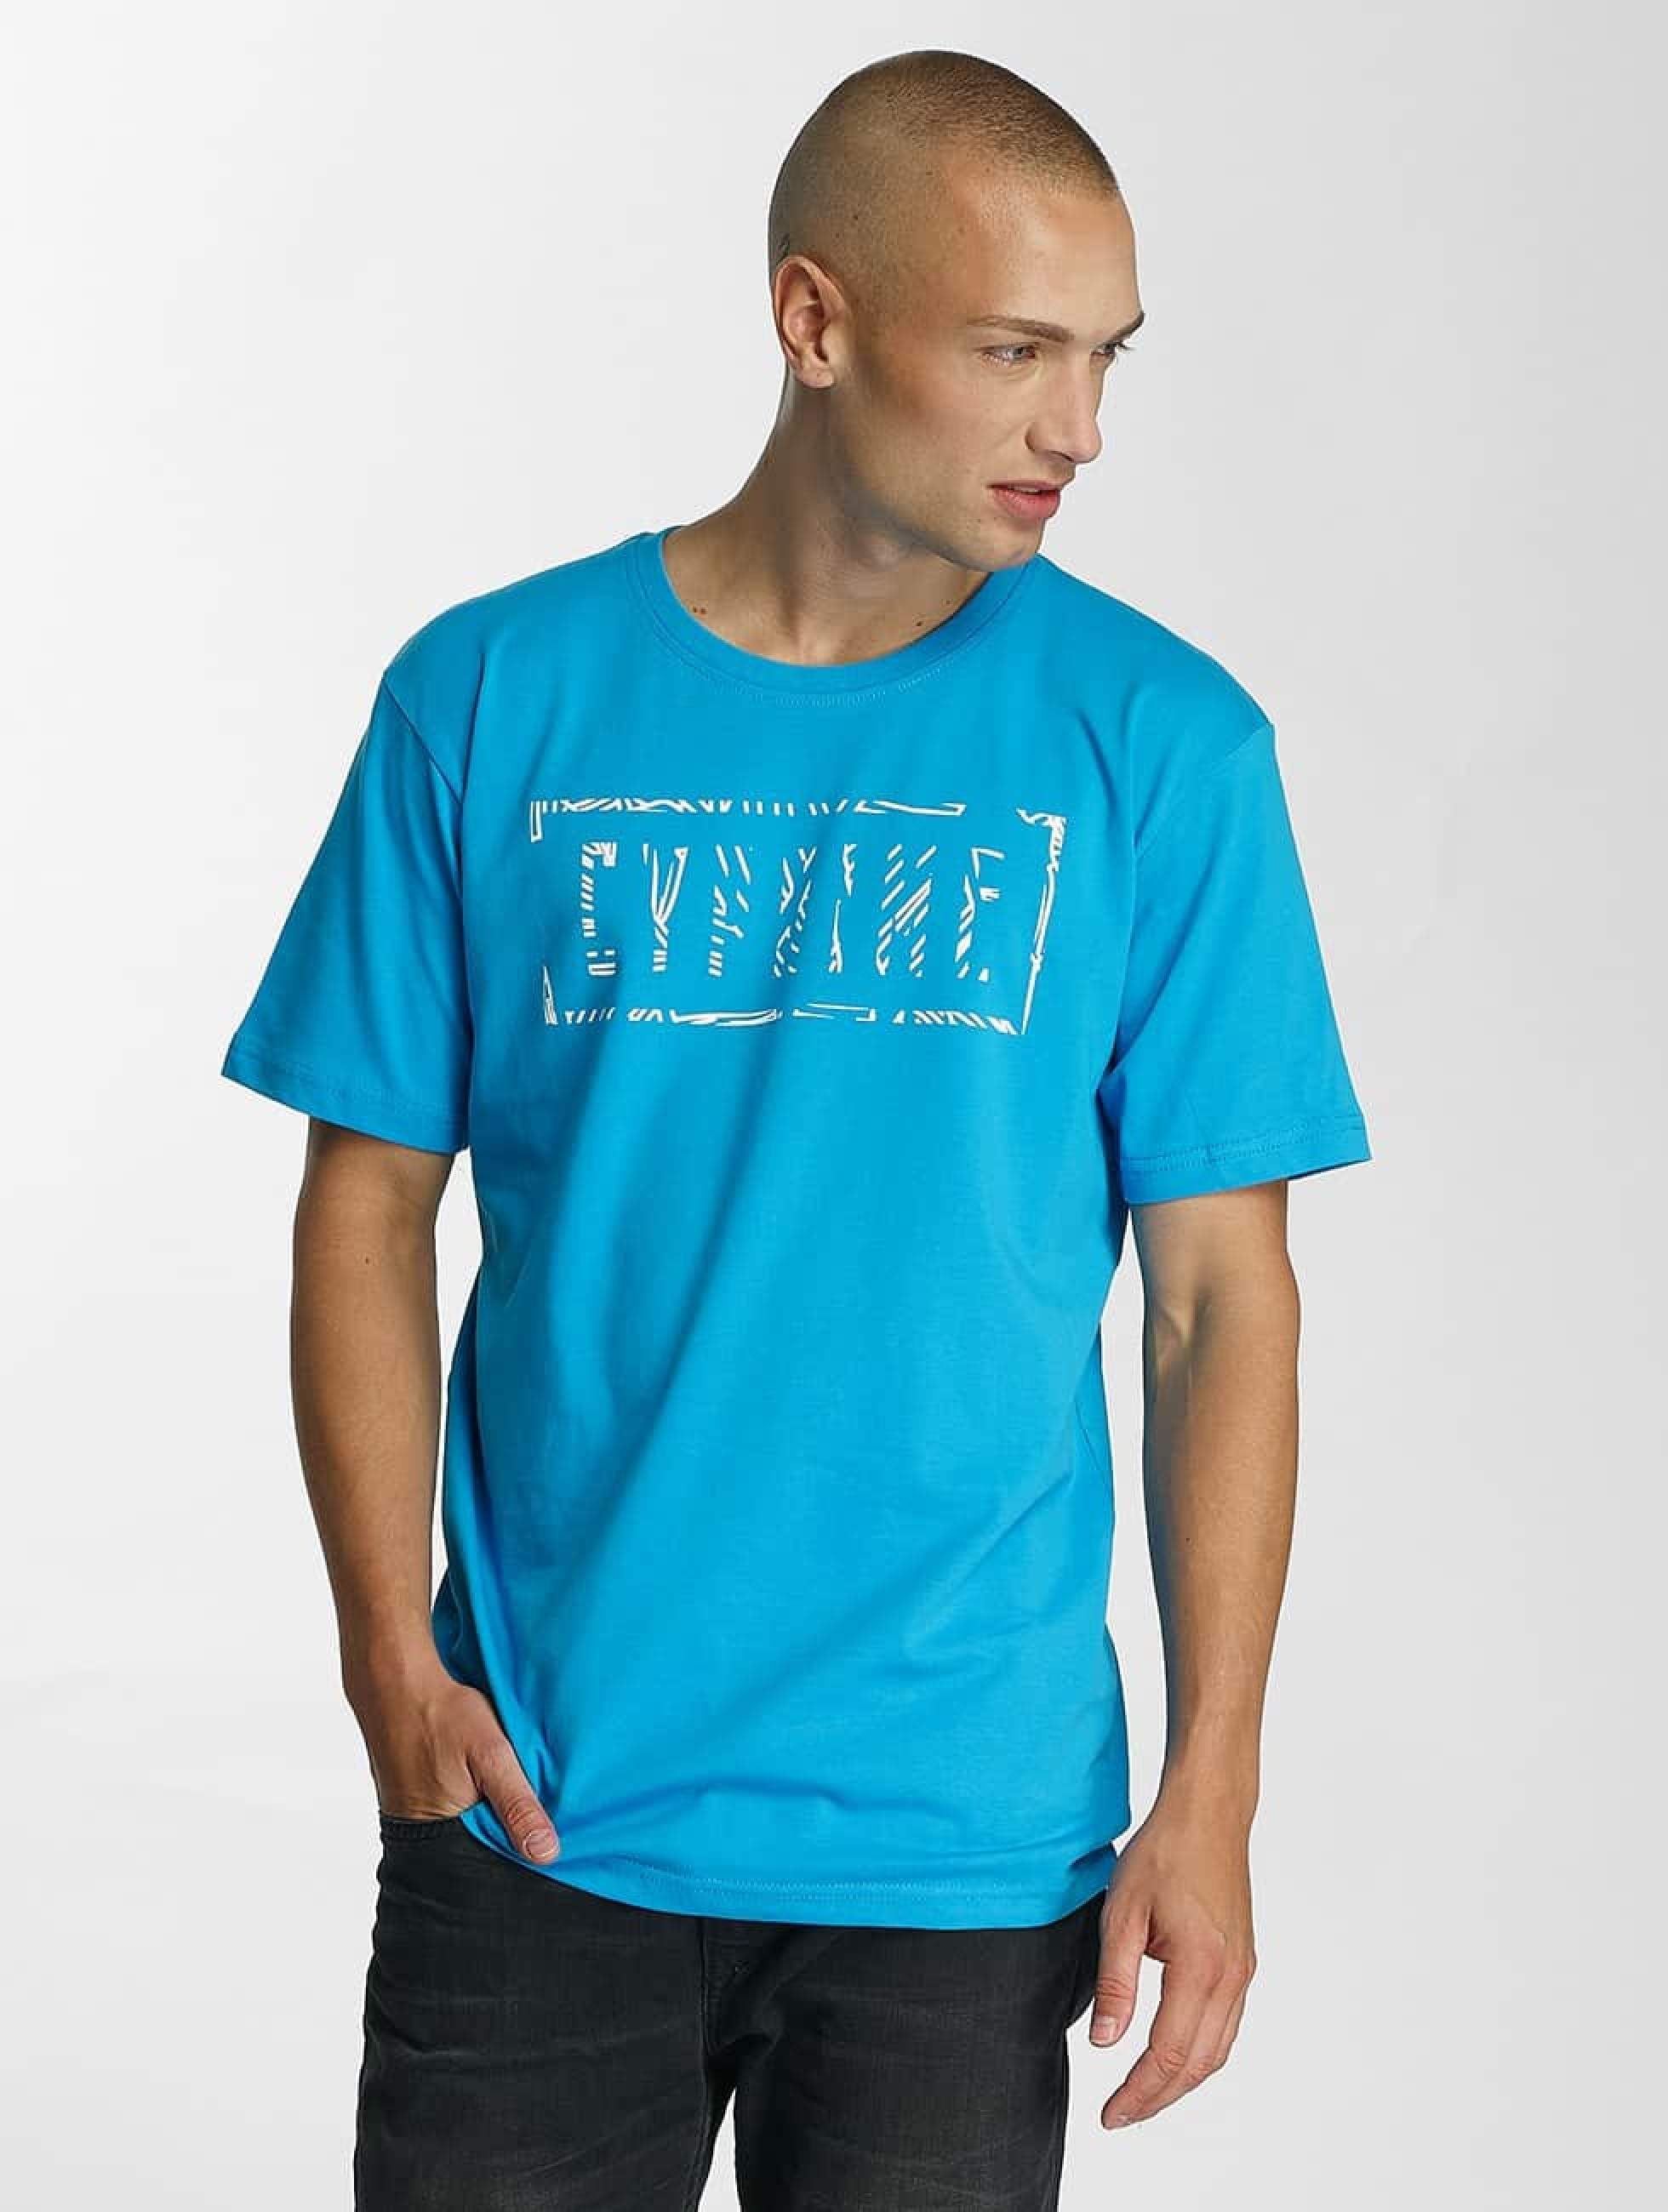 Cyprime / T-Shirt Cerium in turquoise L